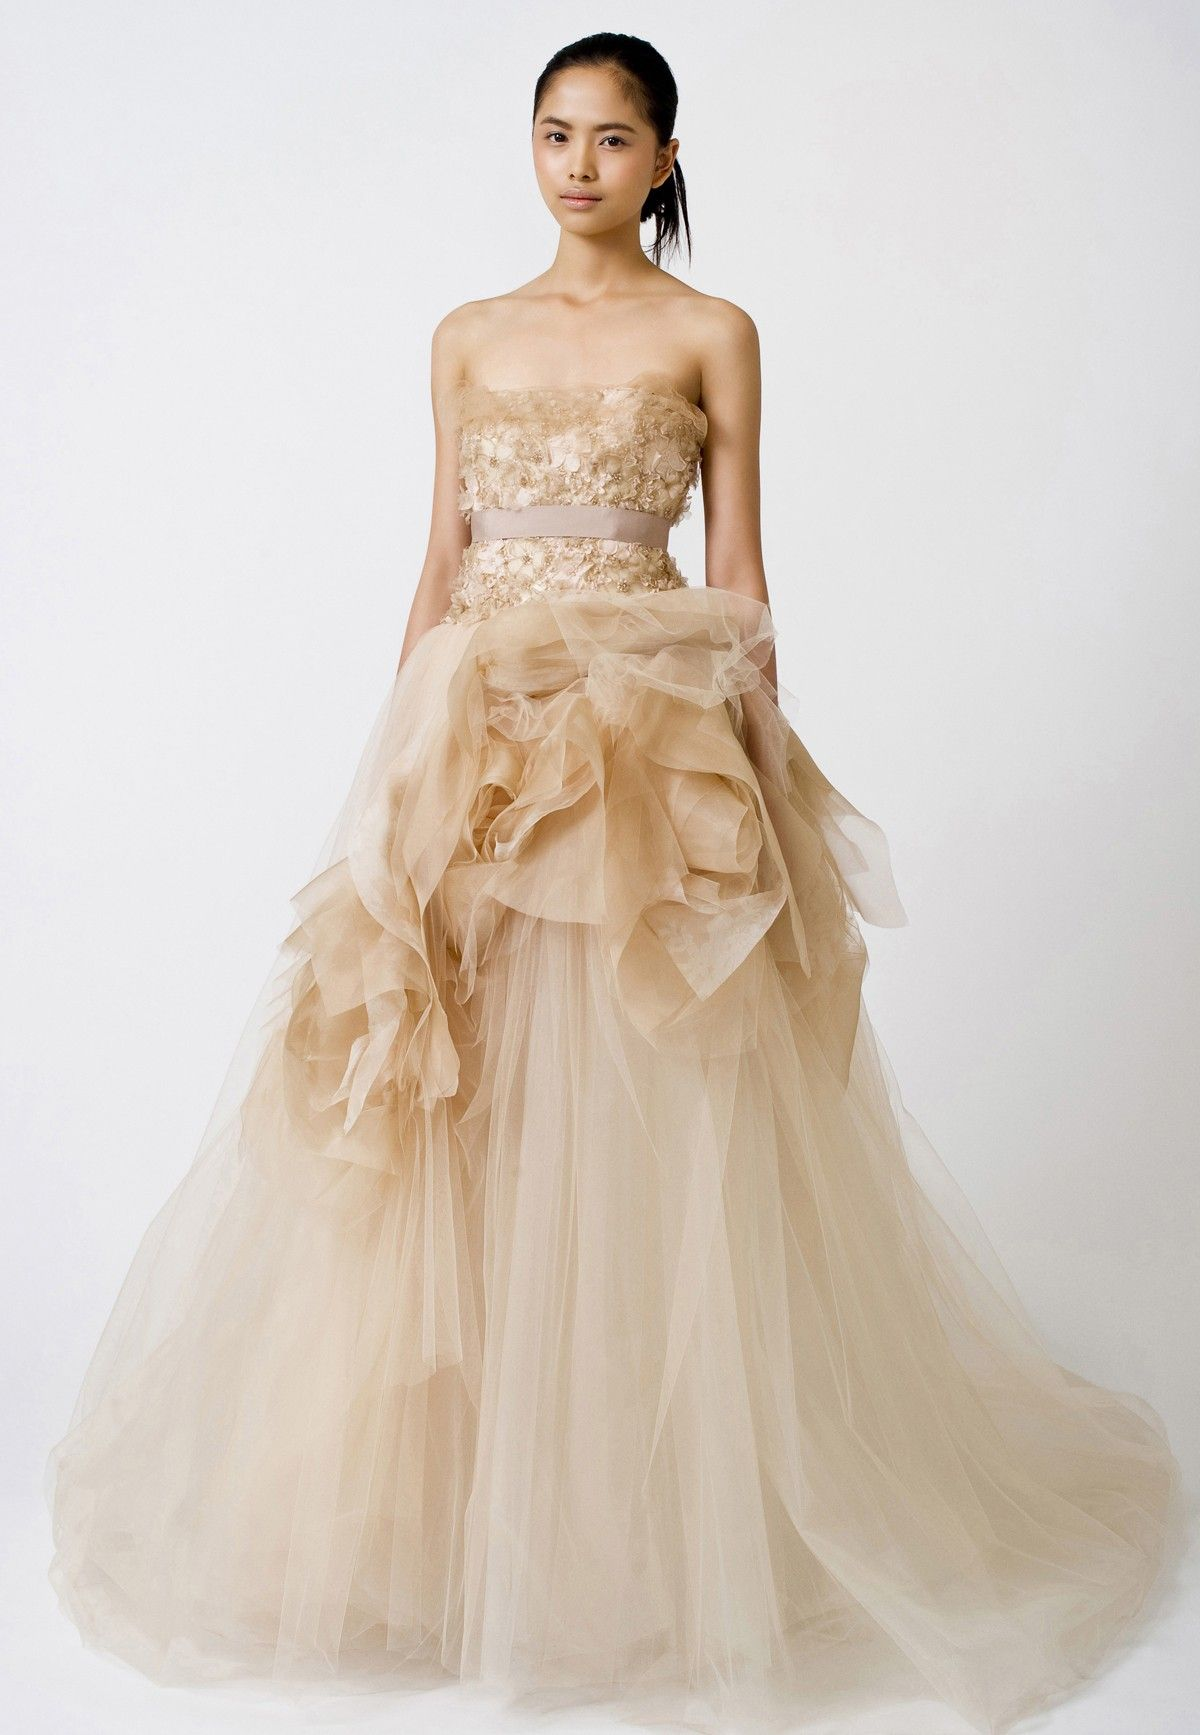 Vera wang ball gown wedding dress  Pin by Ramona Gilia on Wedding  Pinterest  Ball gowns